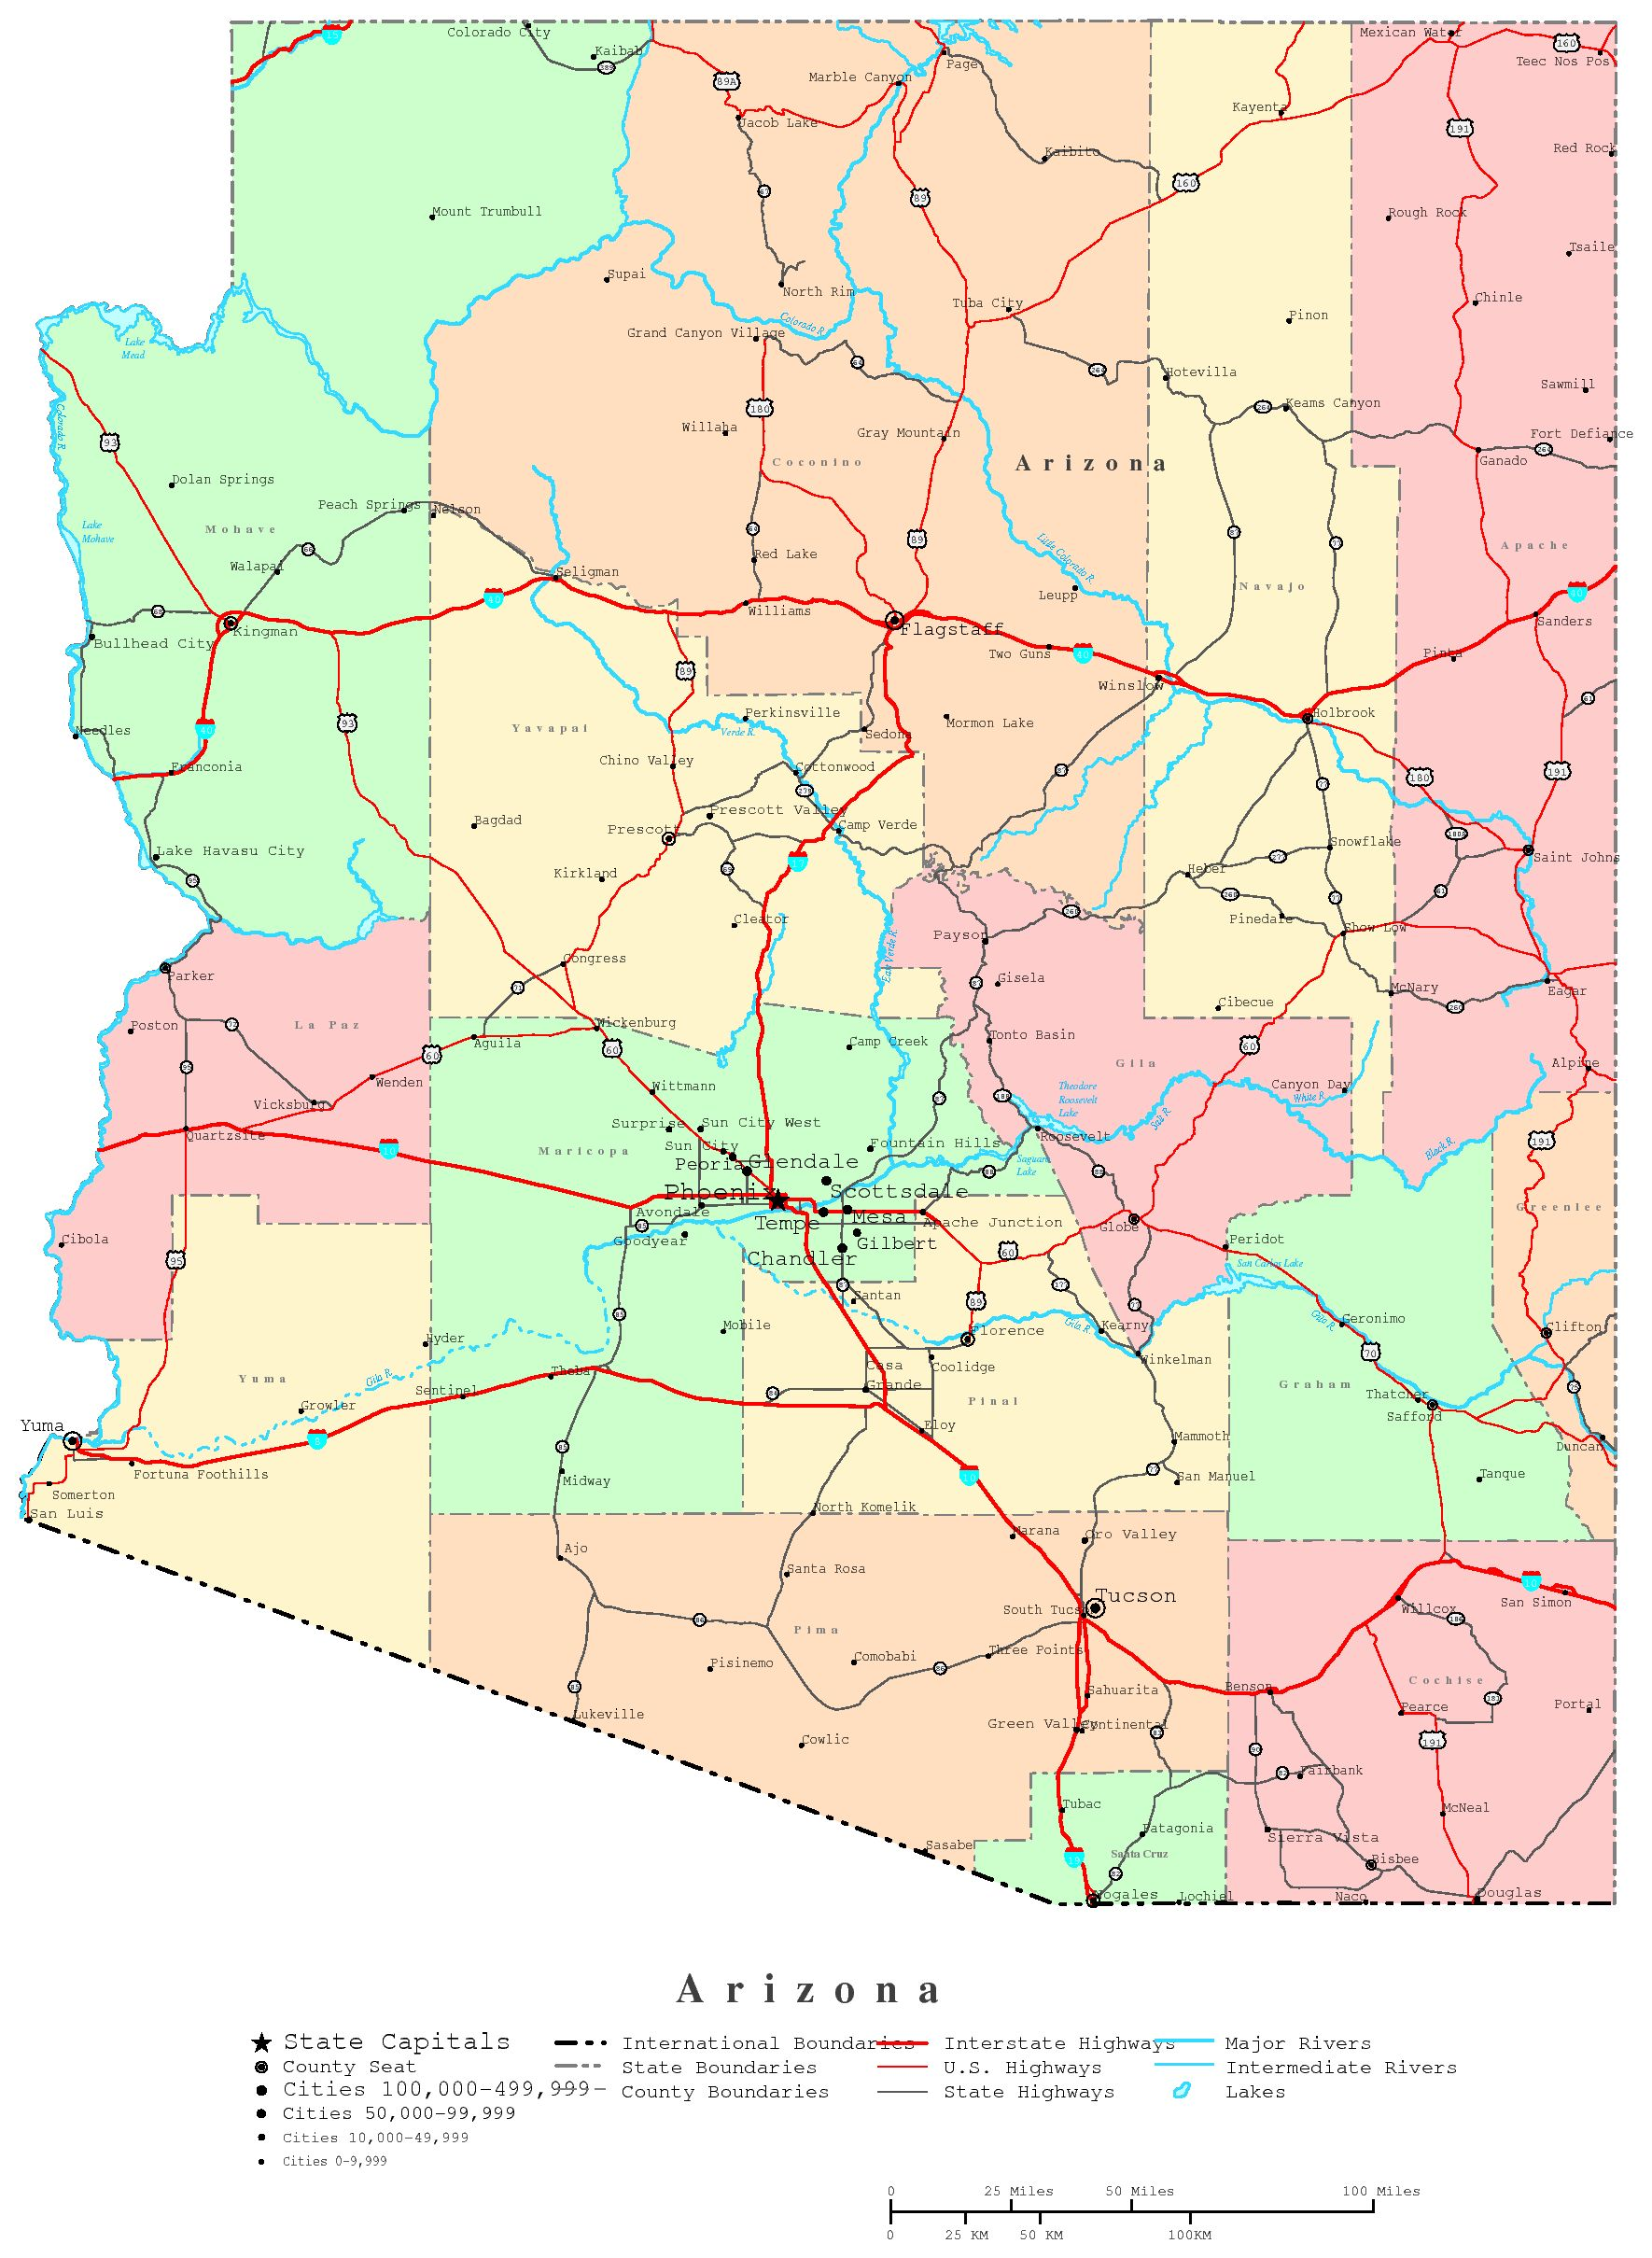 statehood az Arizona was the 48 th state in the usa it became a state on february 14, 1912 state abbreviation - az state capital - phoenix largest city - phoenix area - 114,006 square miles [arizona is the 6th biggest state in the usa].